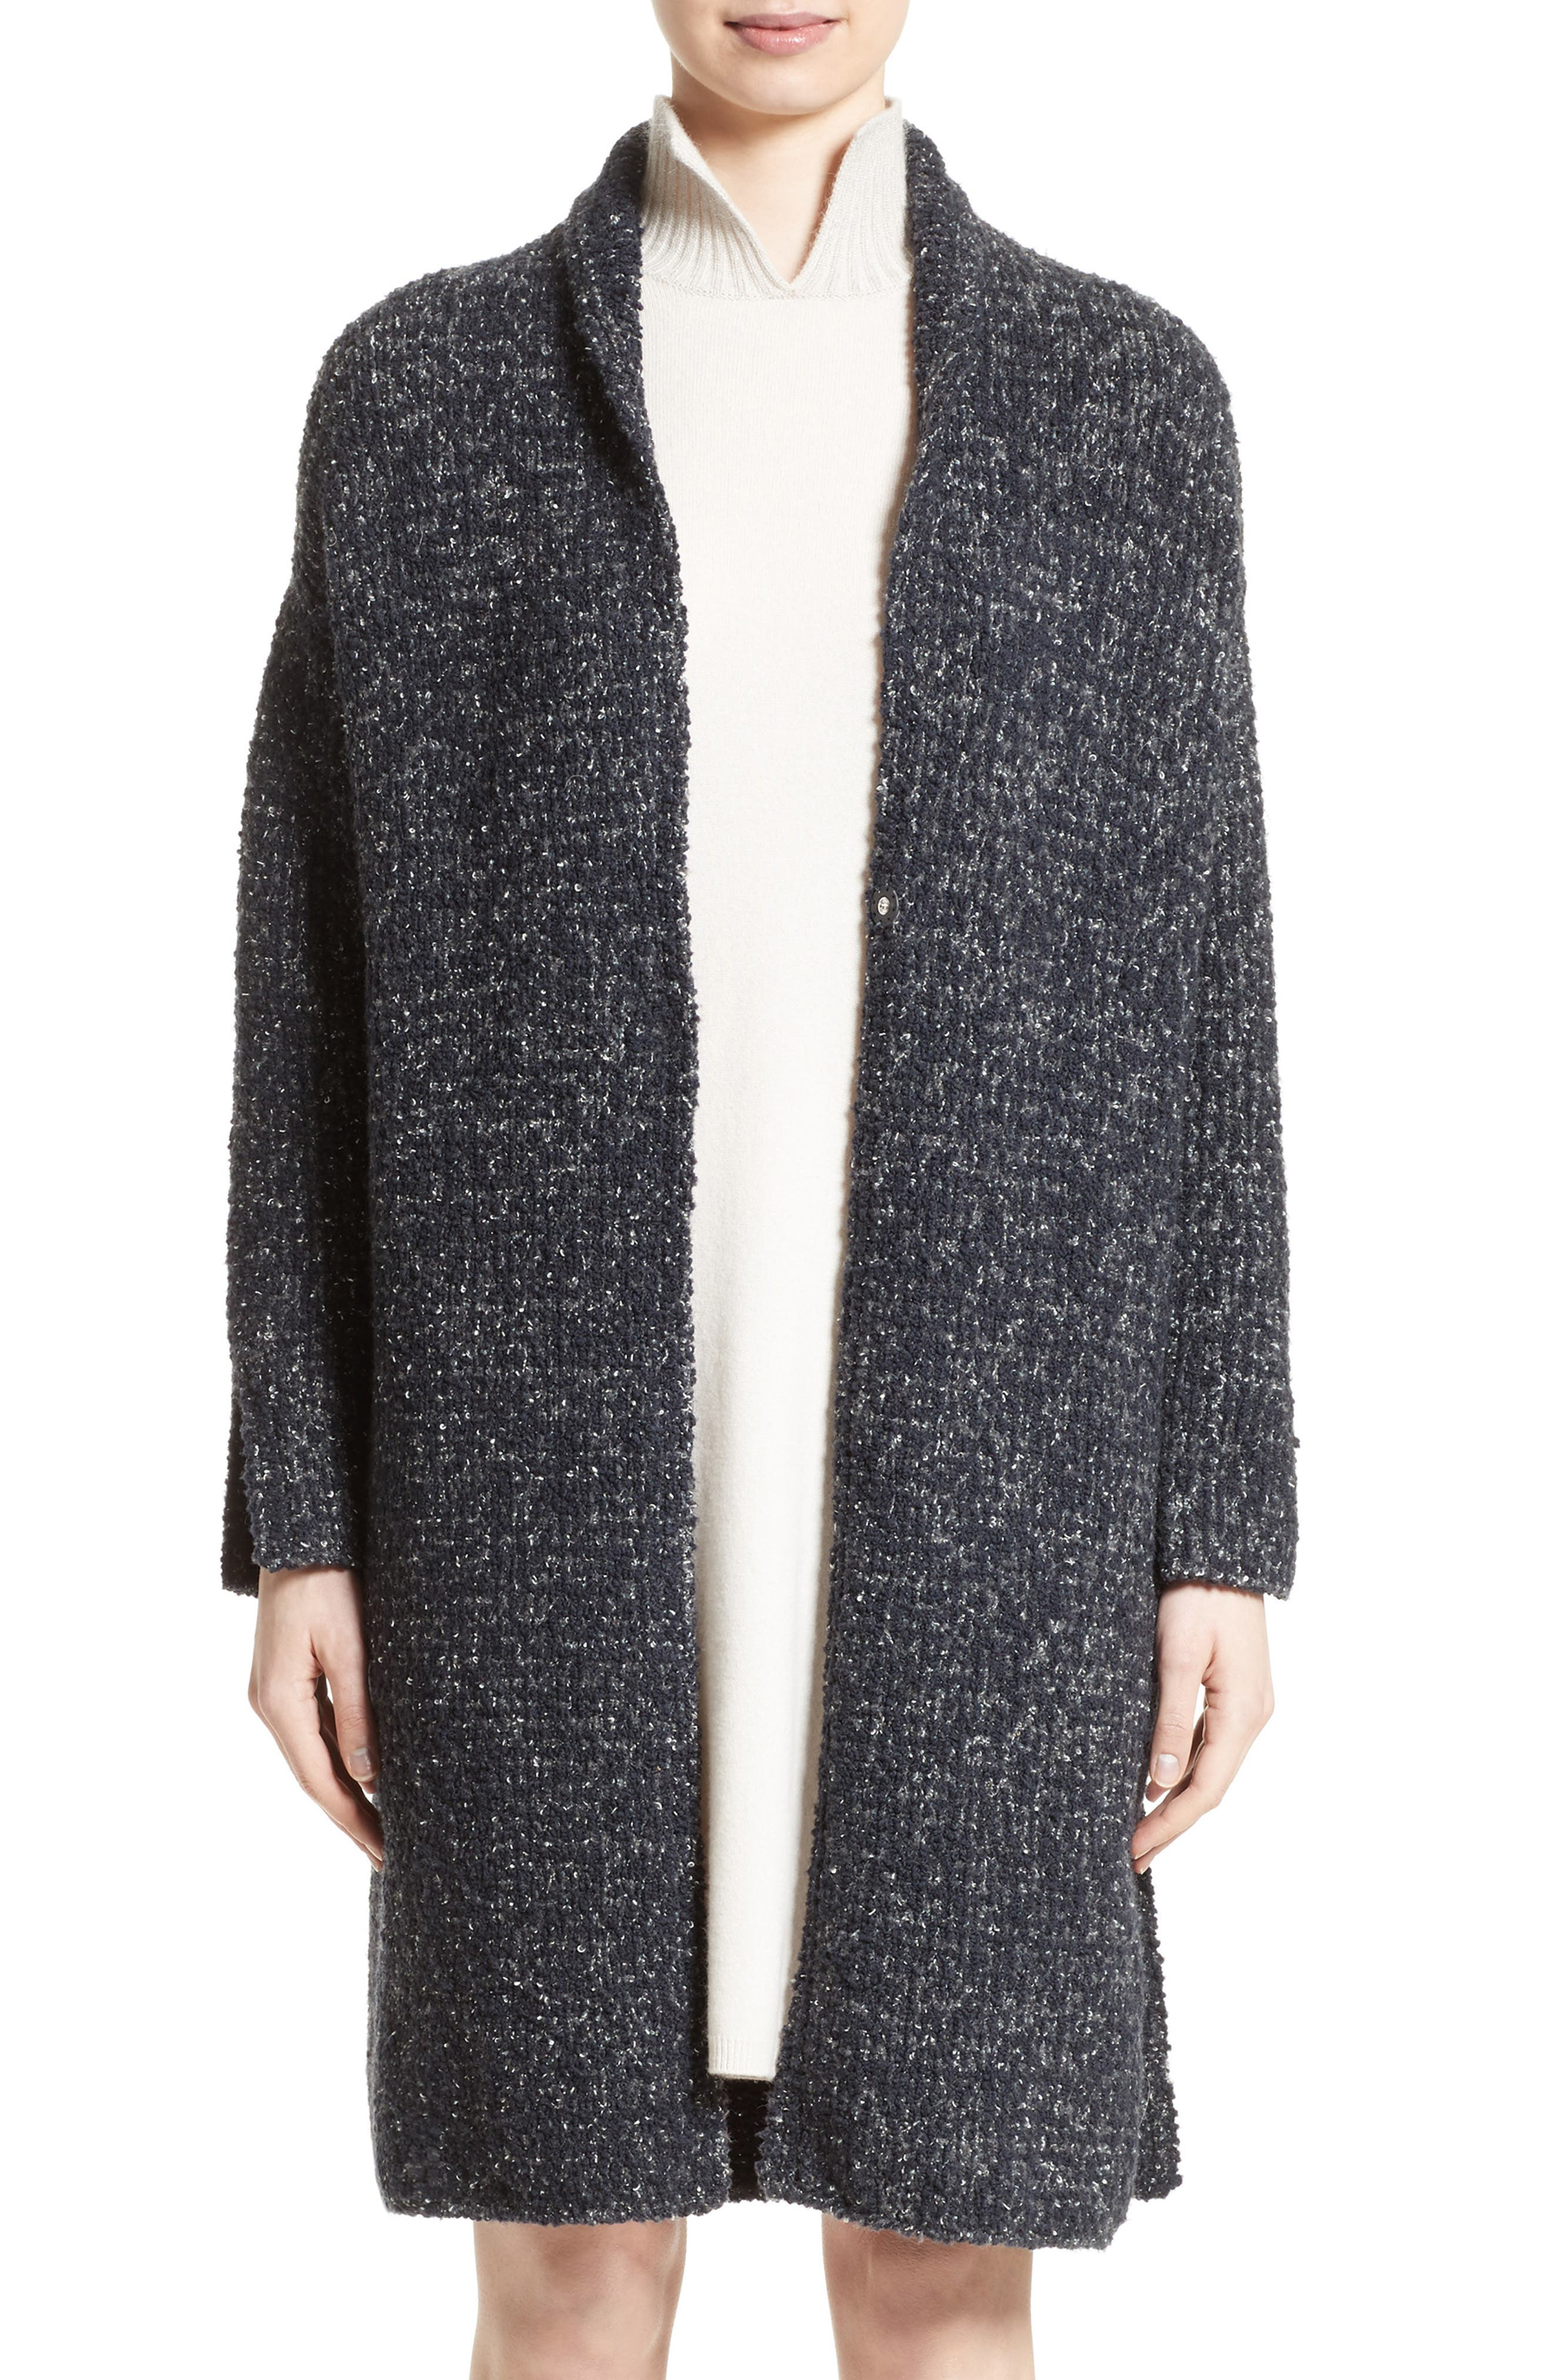 Wool Blend Bouclé Long Cardigan,                             Main thumbnail 1, color,                             Grey Multi